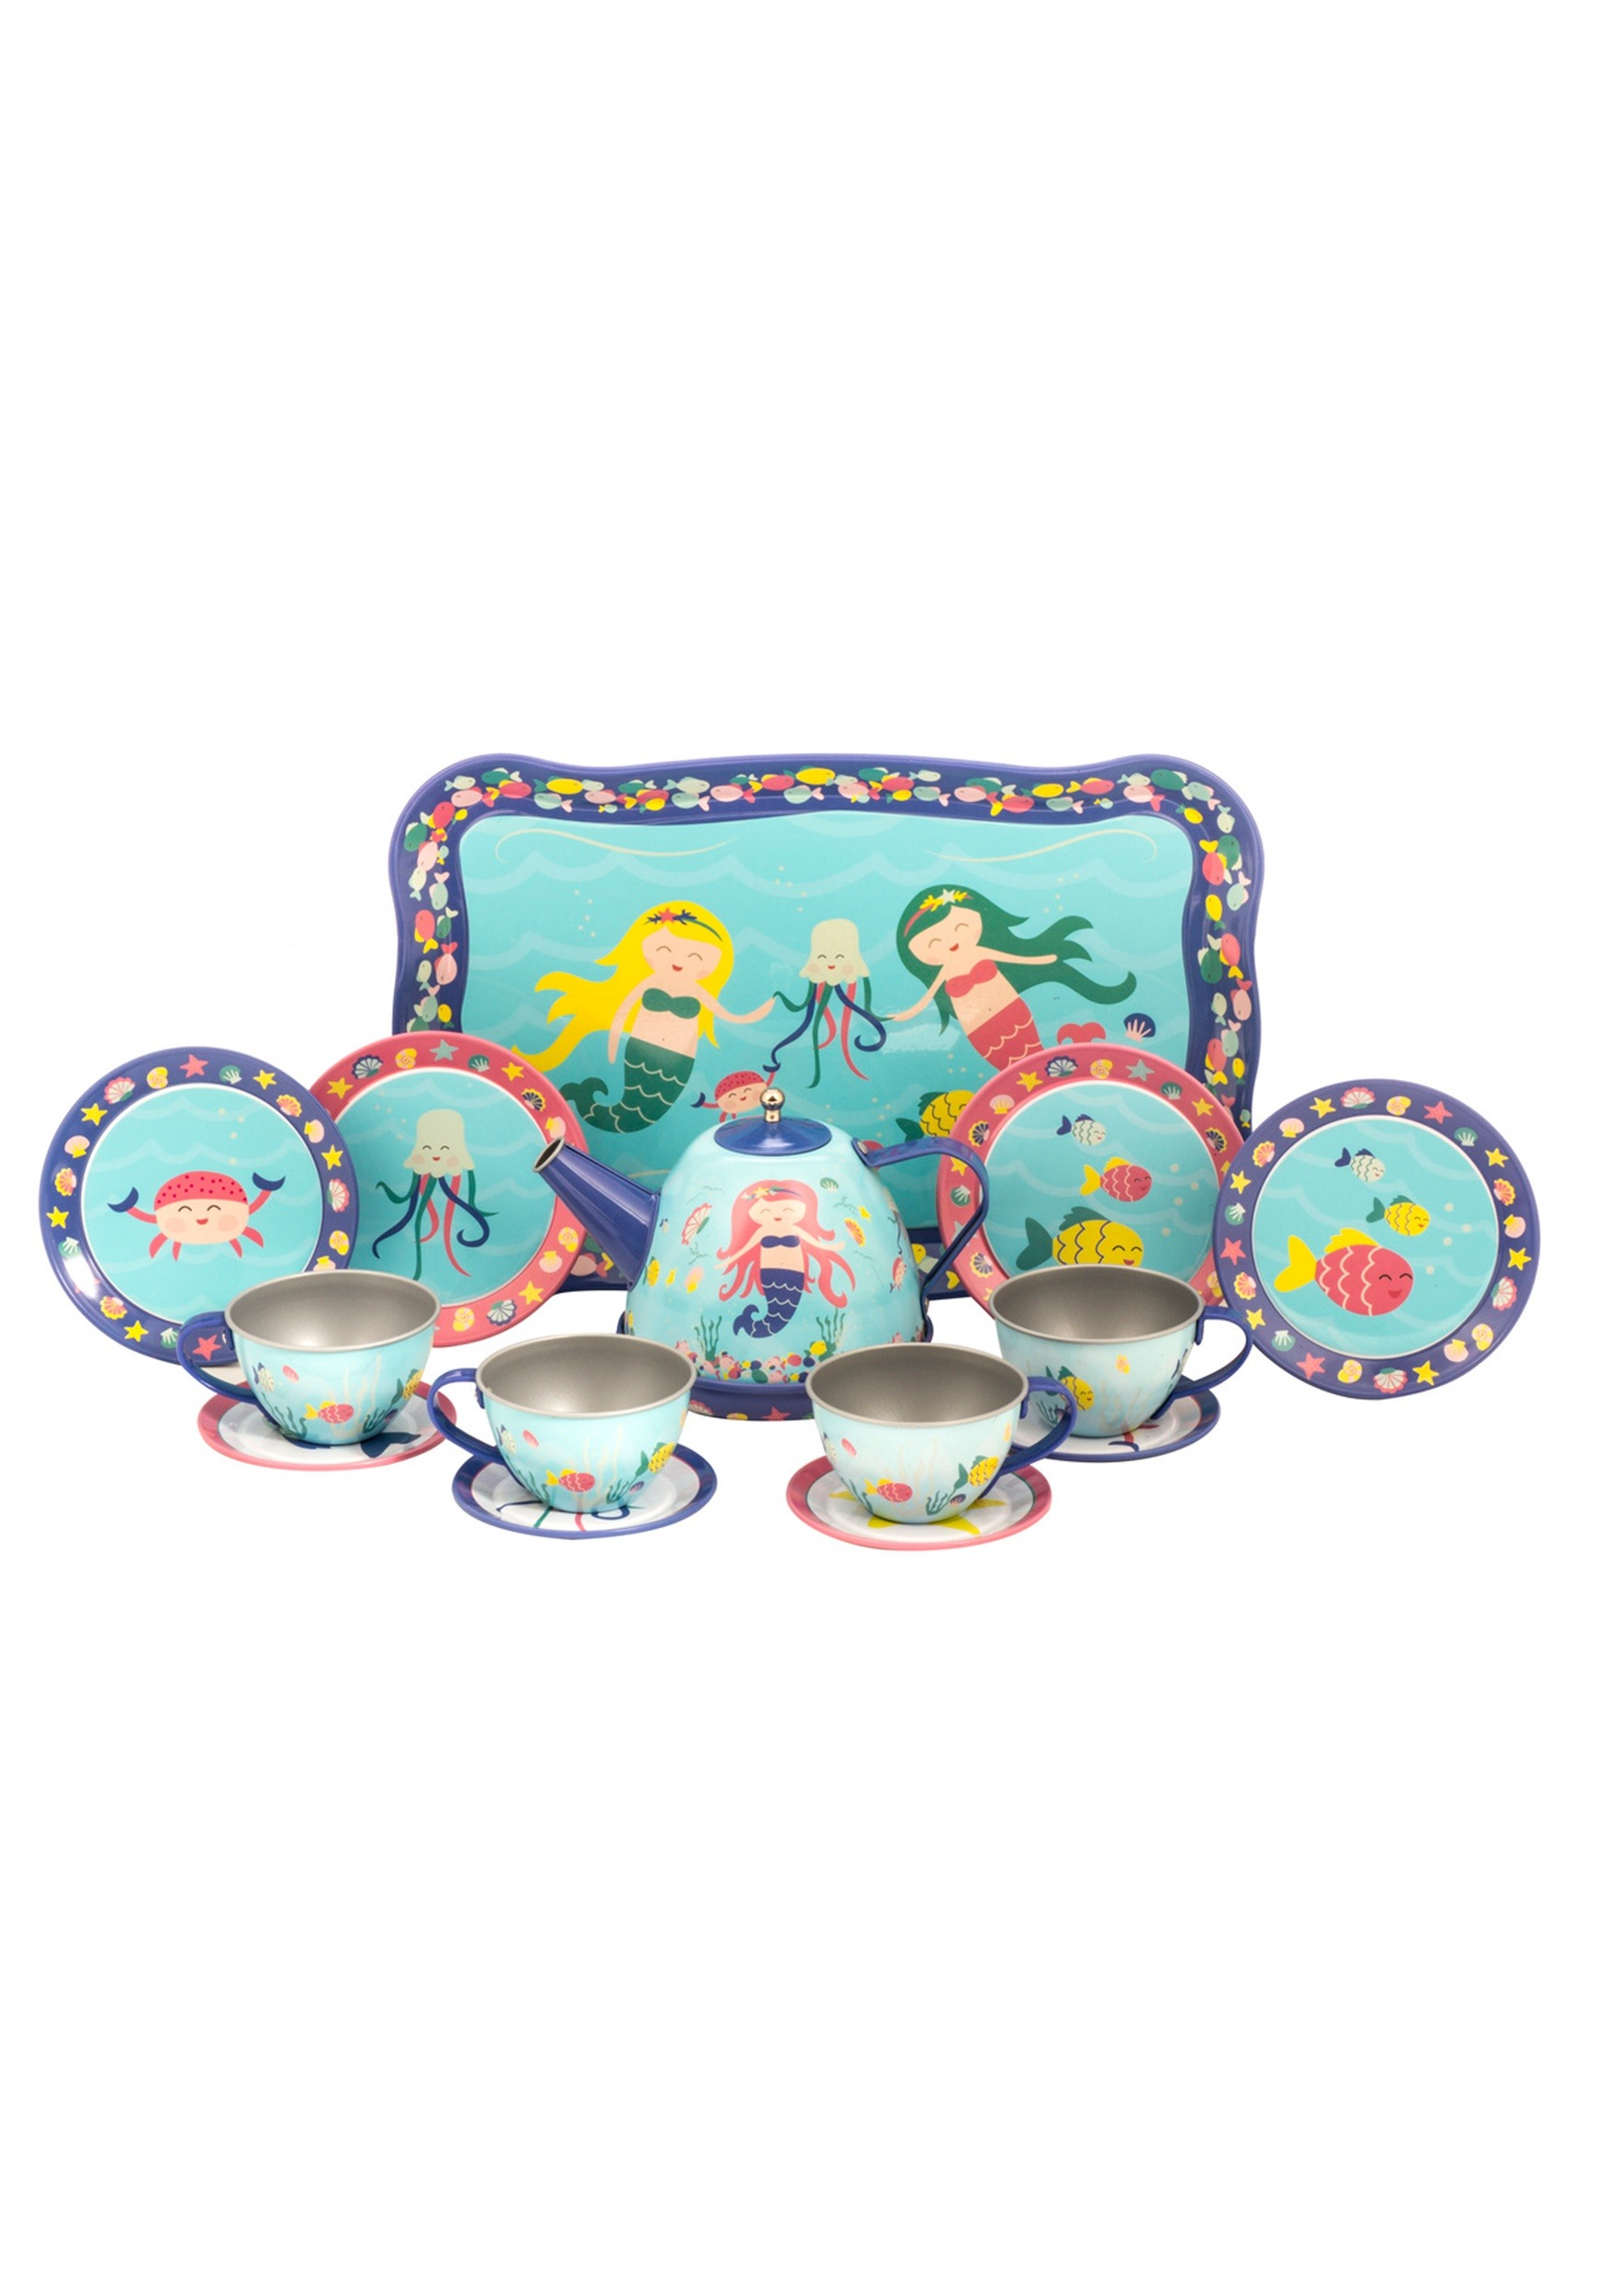 Mermaid Tin Tea Playset